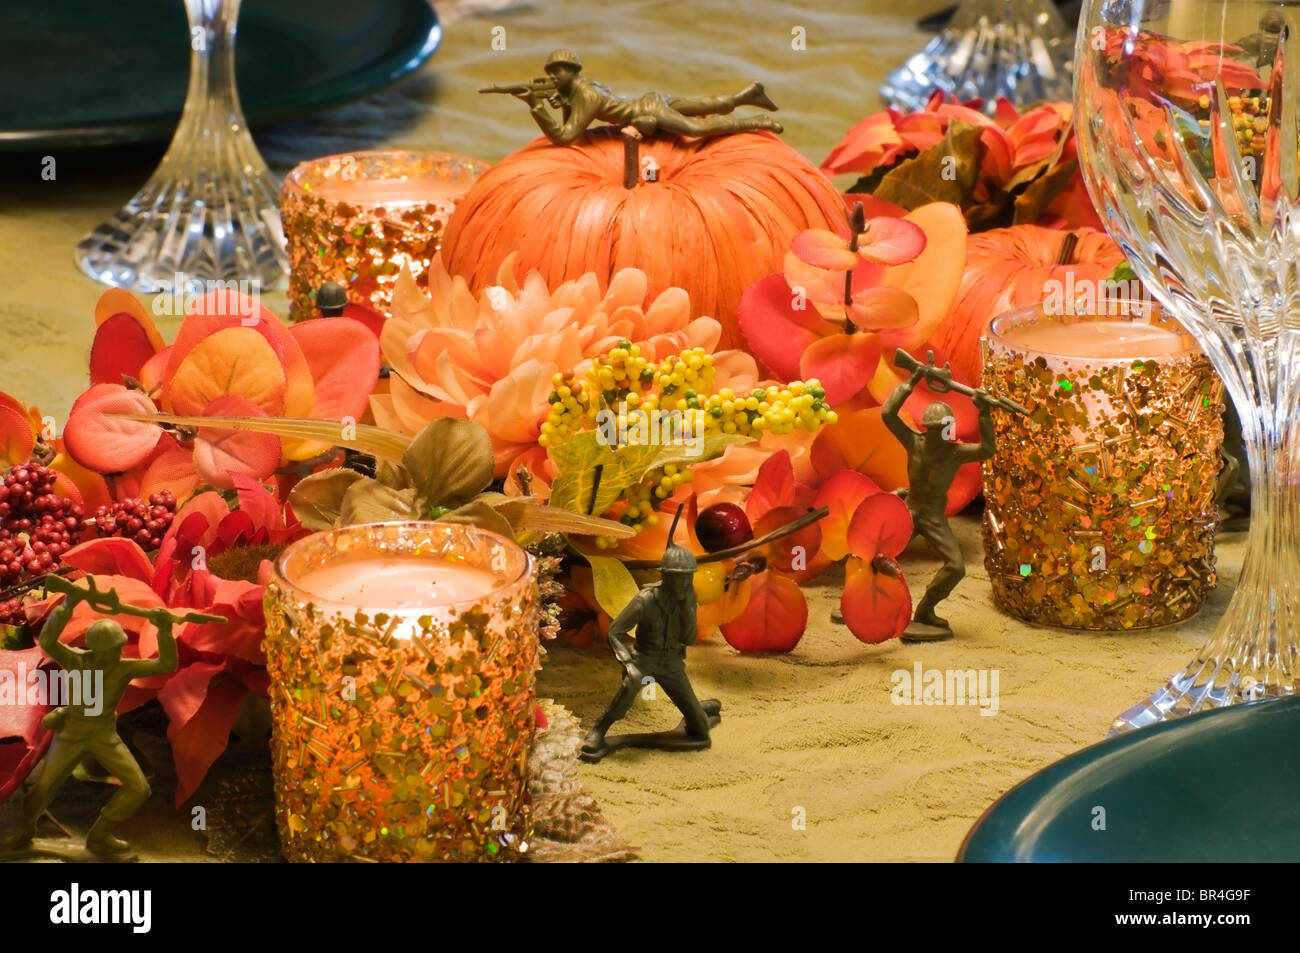 Military themed autumn centerpiece fills table with silk flowers military themed autumn centerpiece fills table with silk flowers straw pumpkins glowing candlelight and plastic toy soldiers mightylinksfo